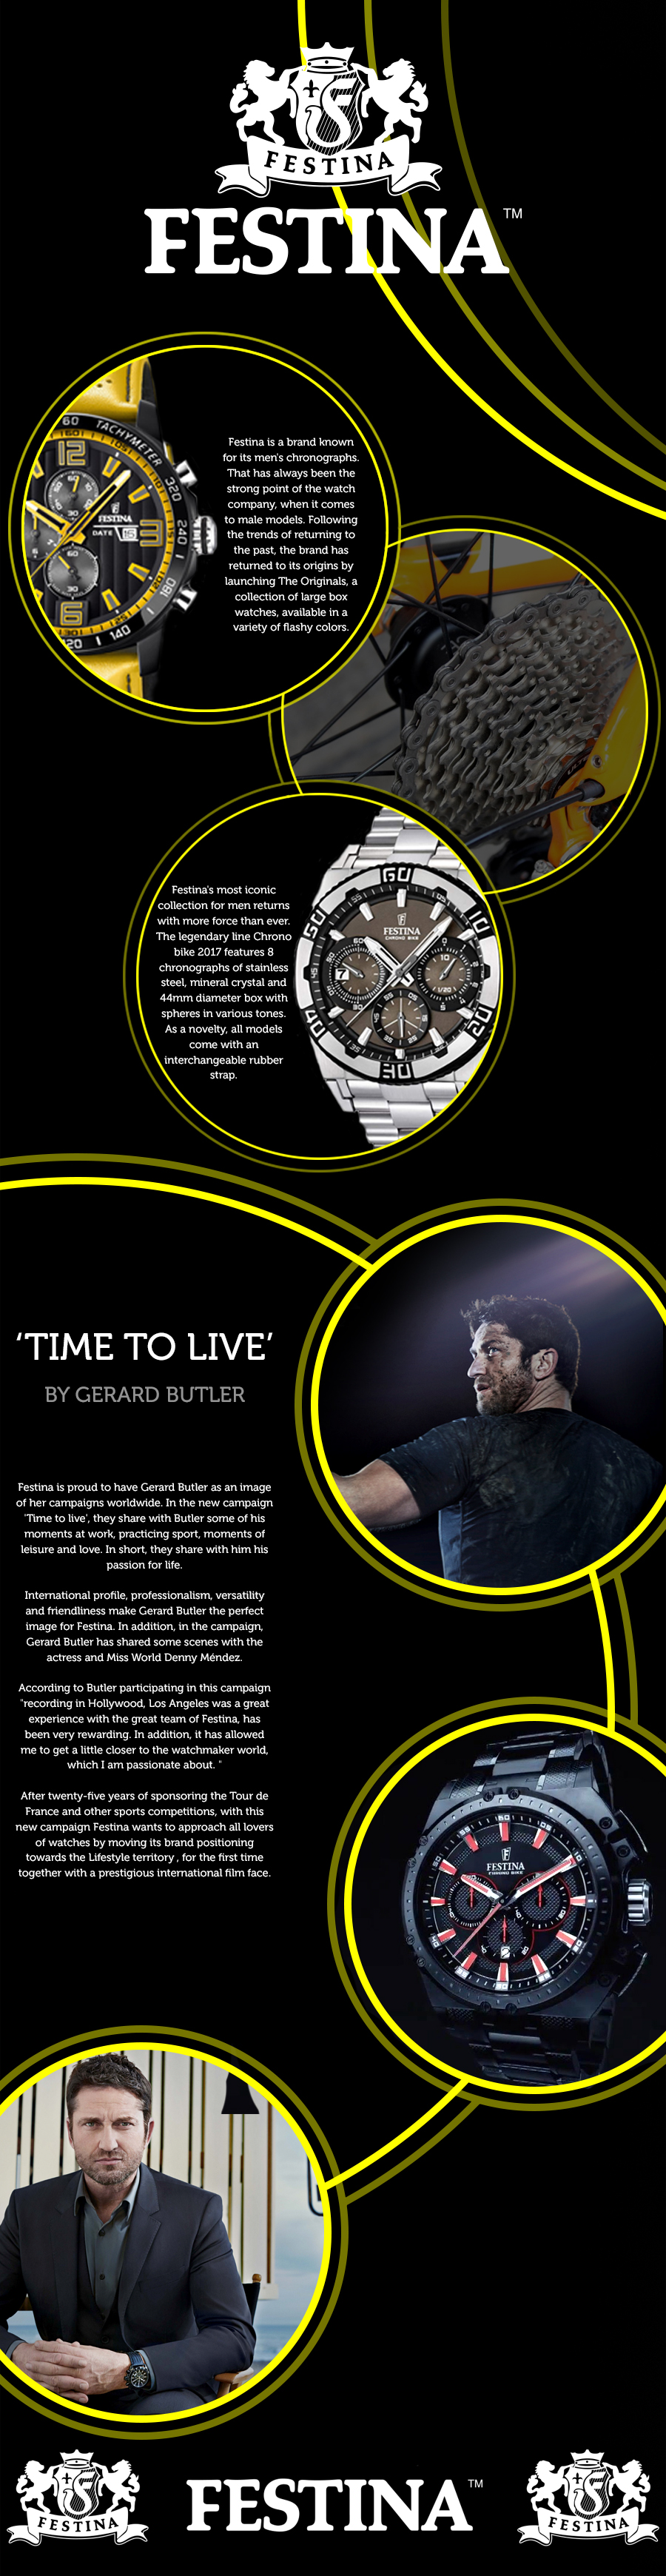 festina watches info graphic